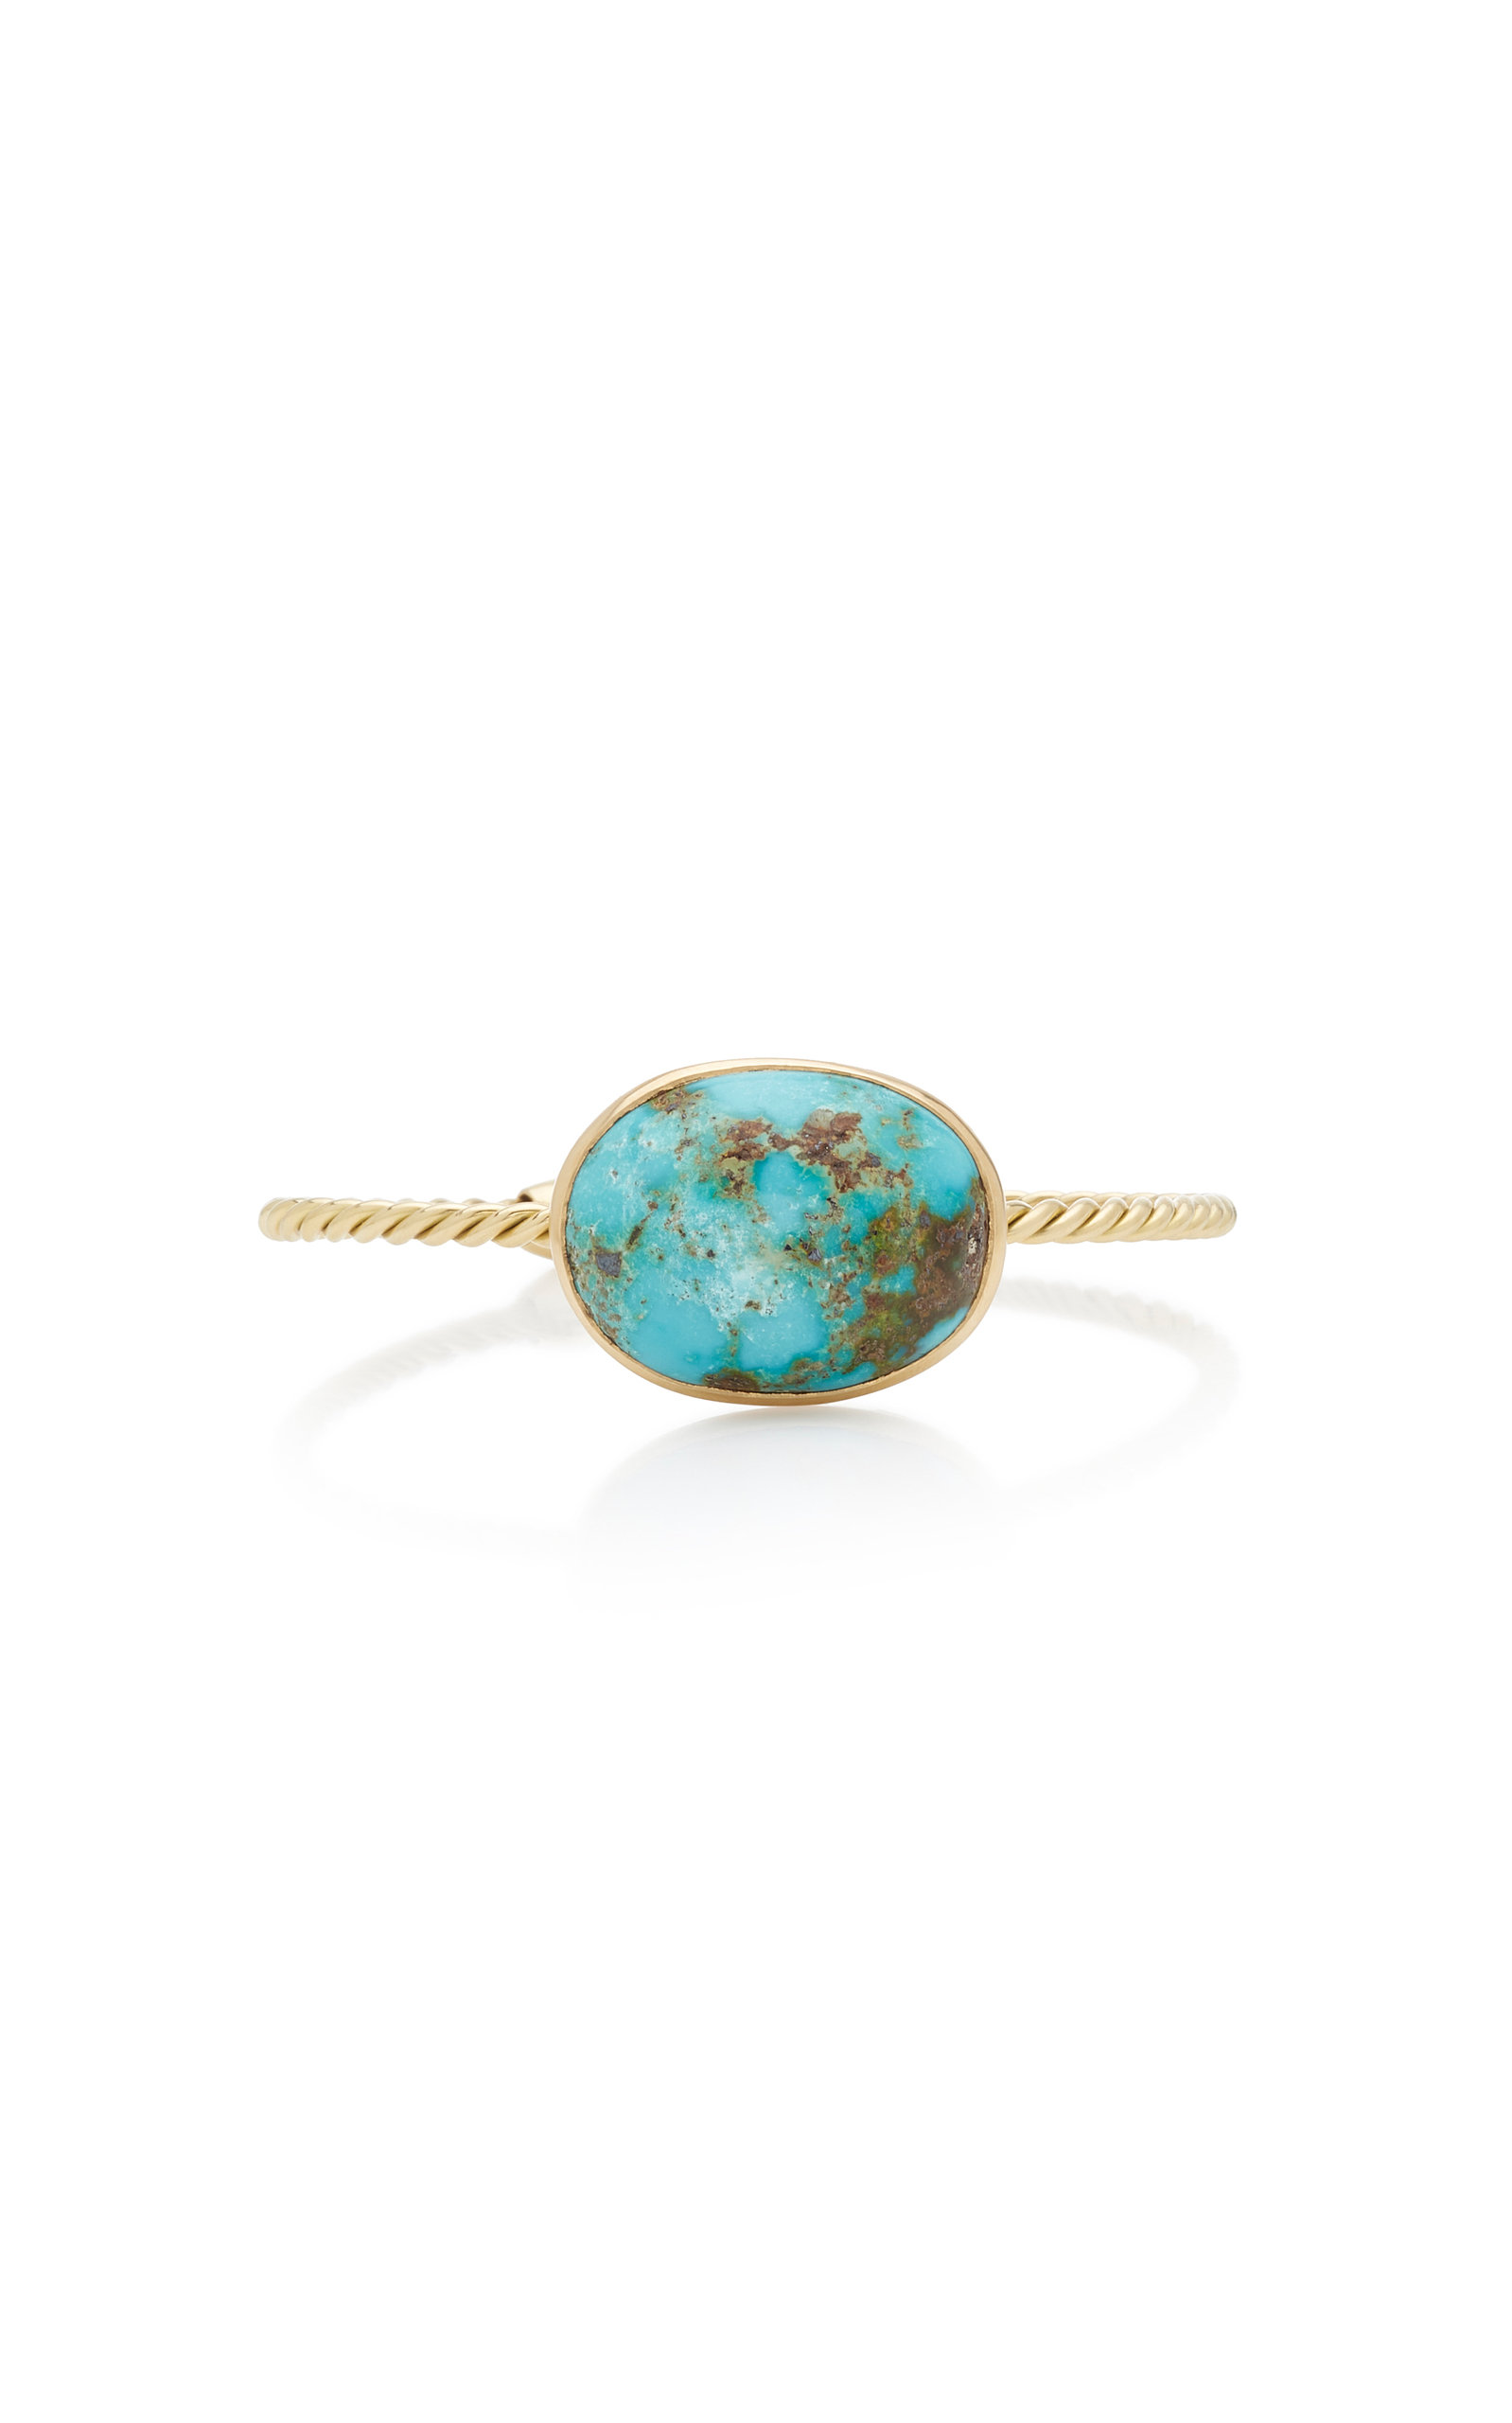 Women's Twisted 18K Yellow-Gold and Turquoise Cuff